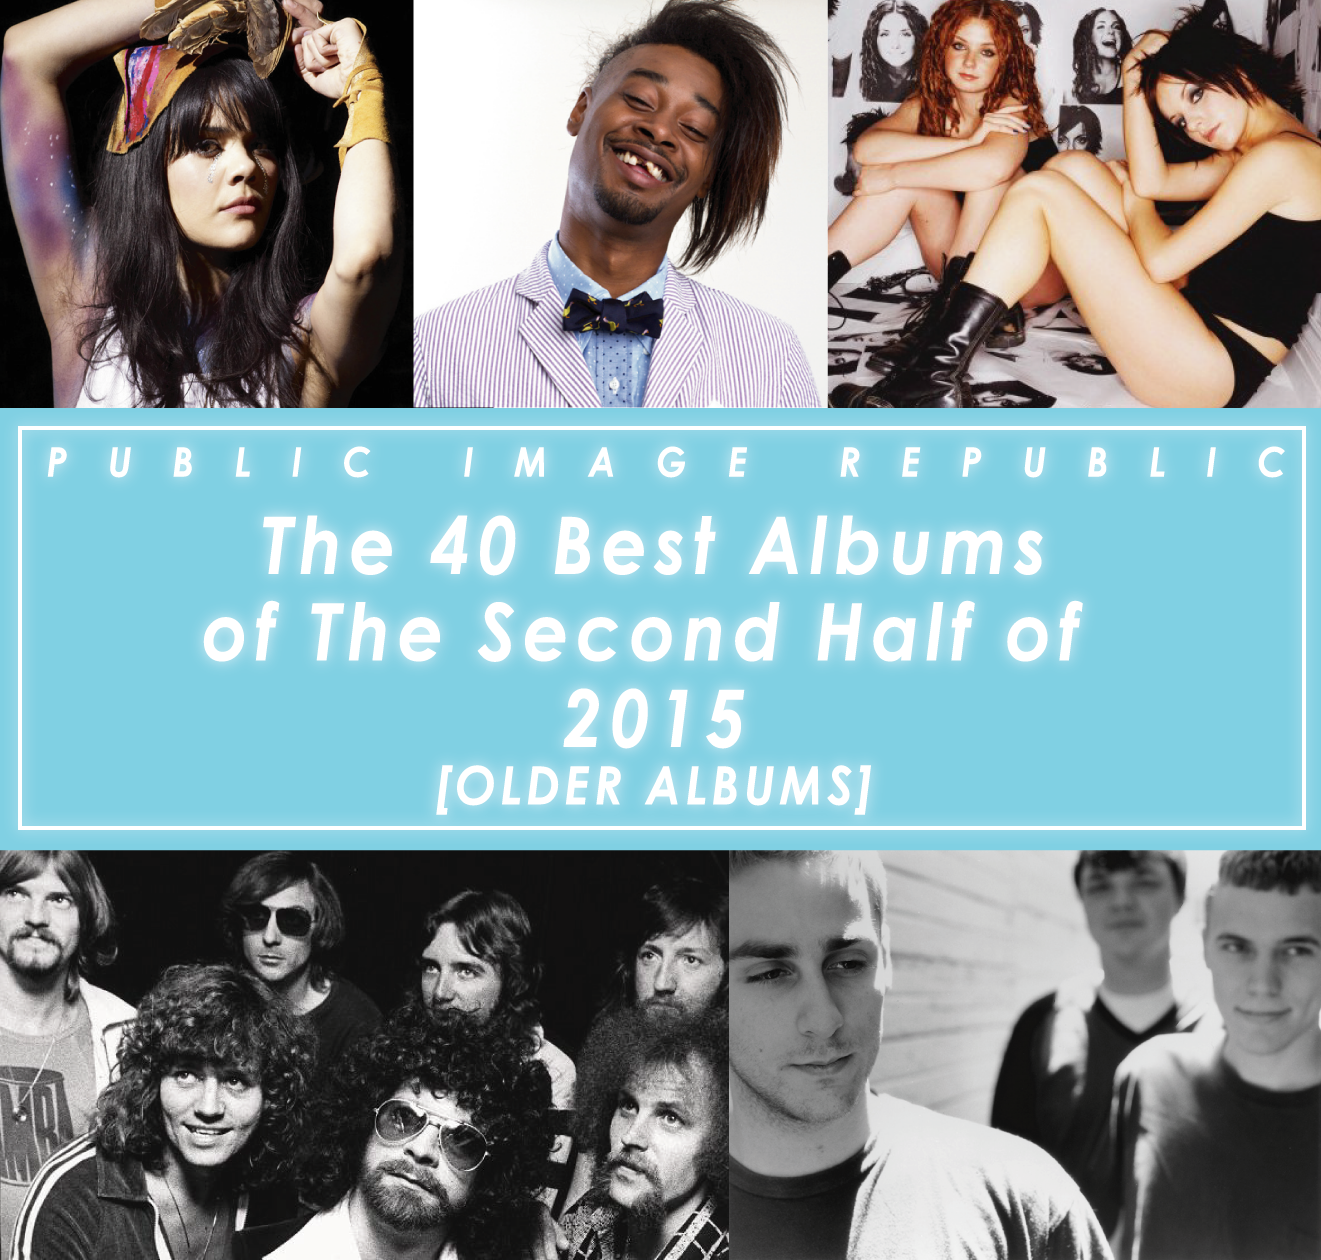 olderalbums_secondhalf2015.png